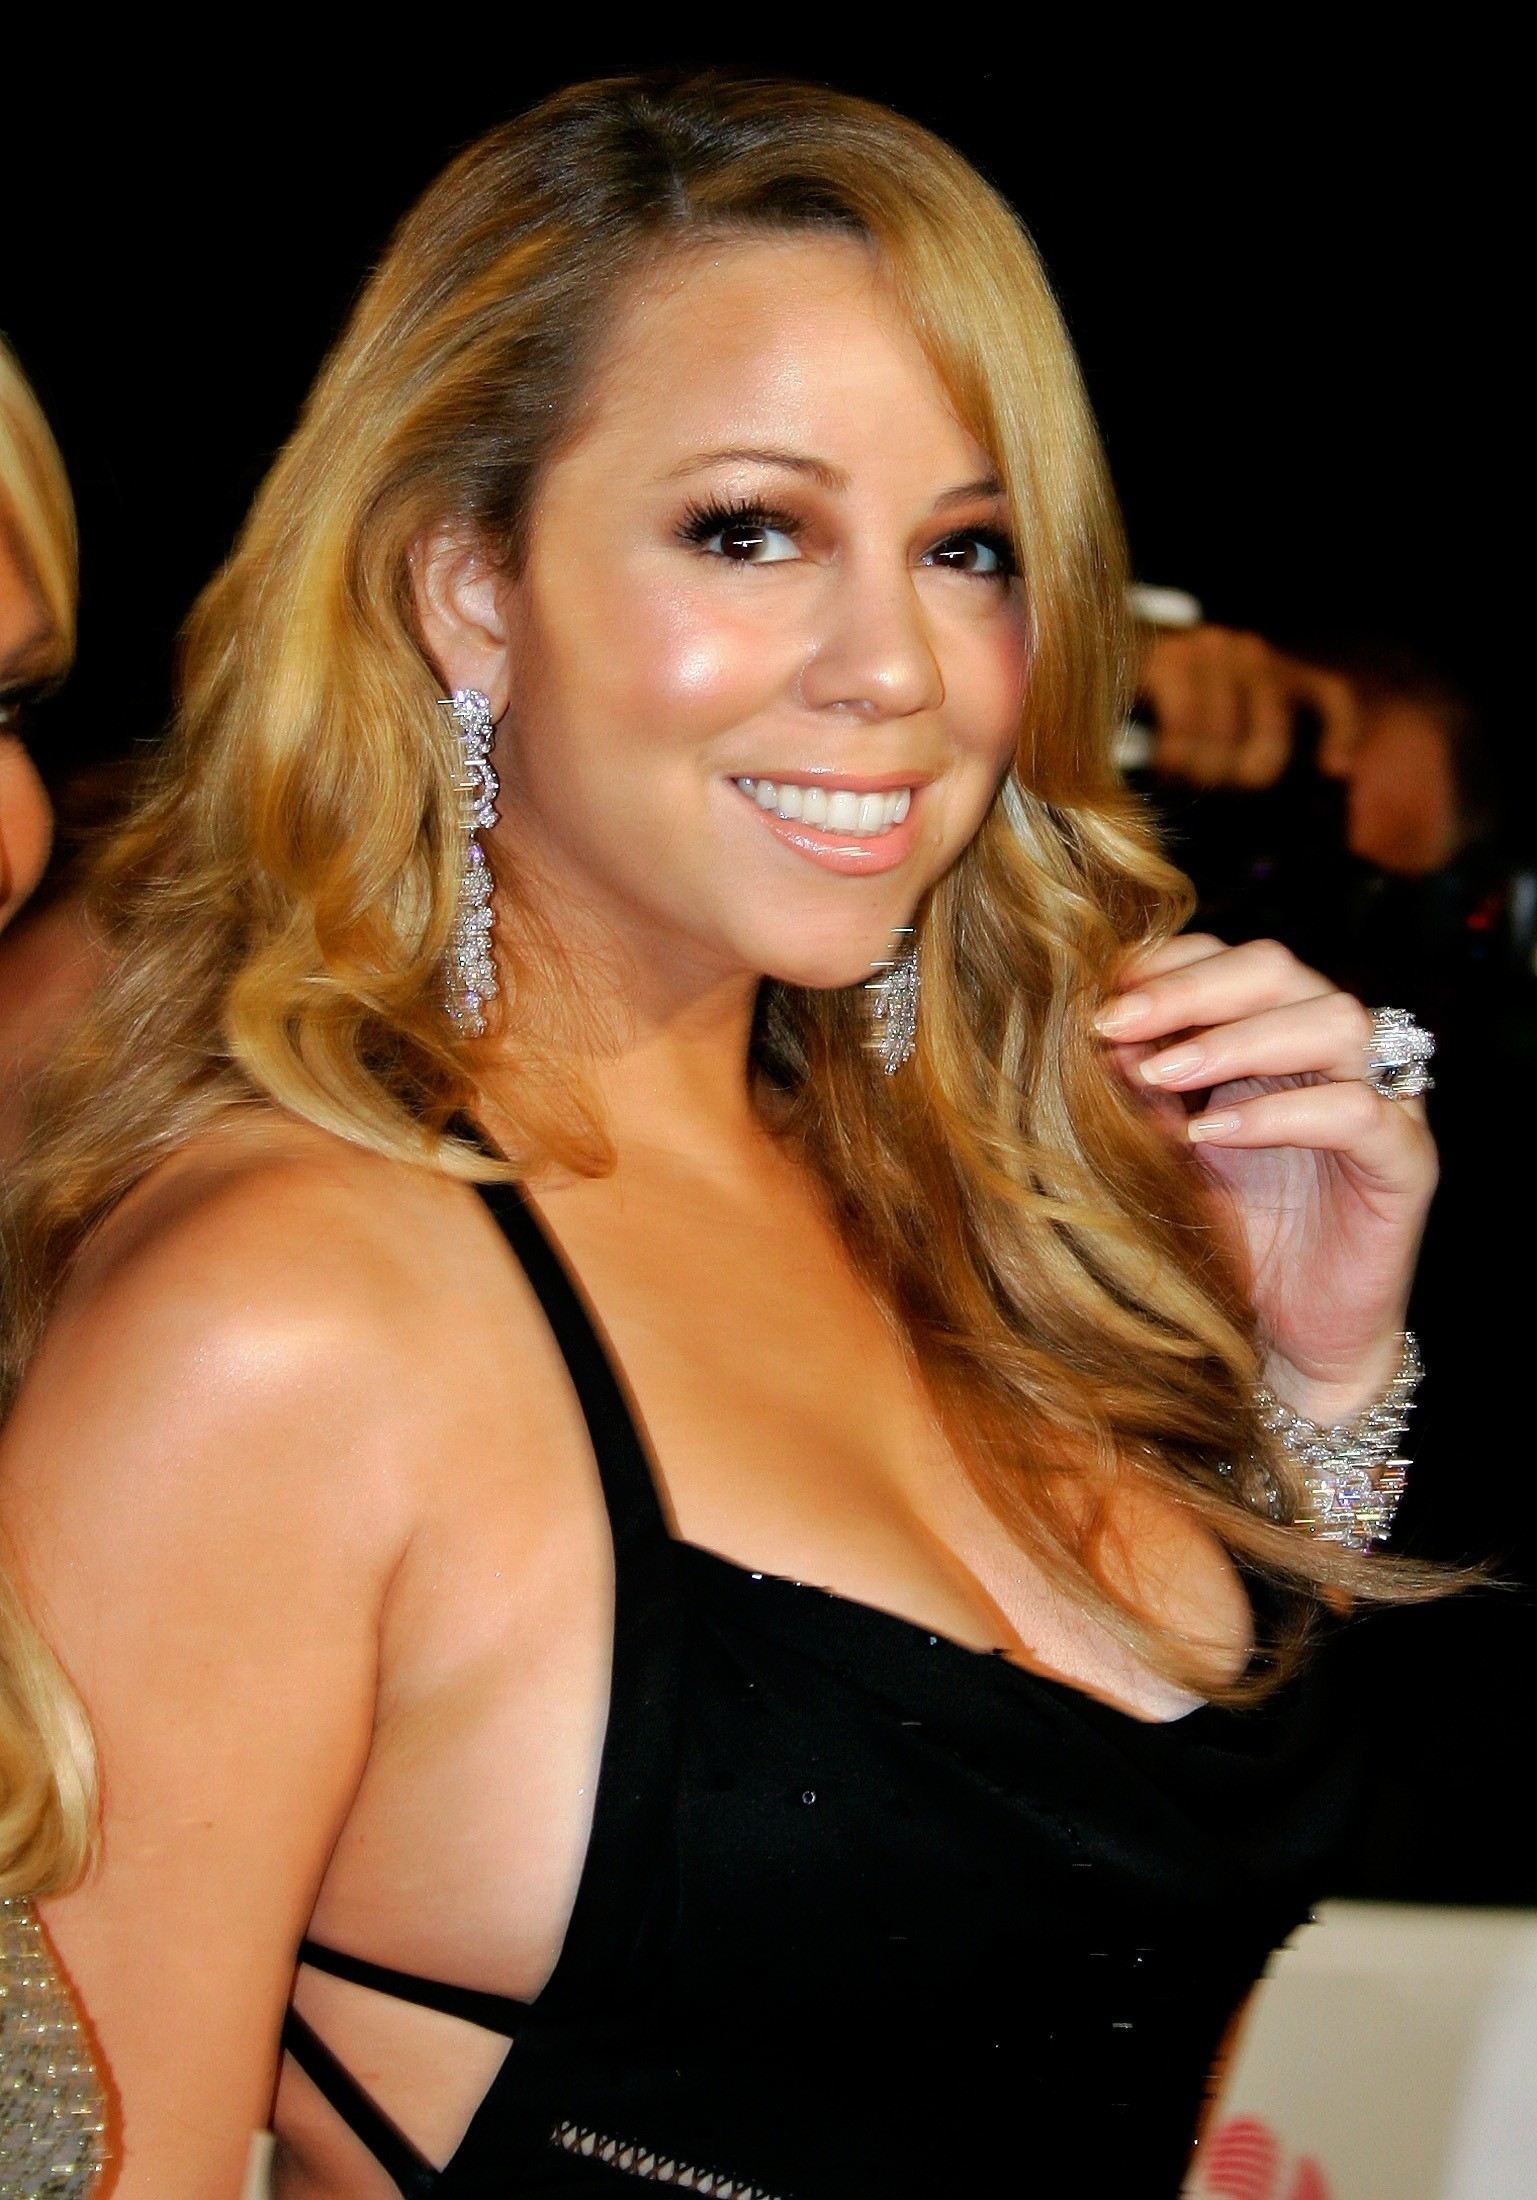 What is the net worth of mariah carey